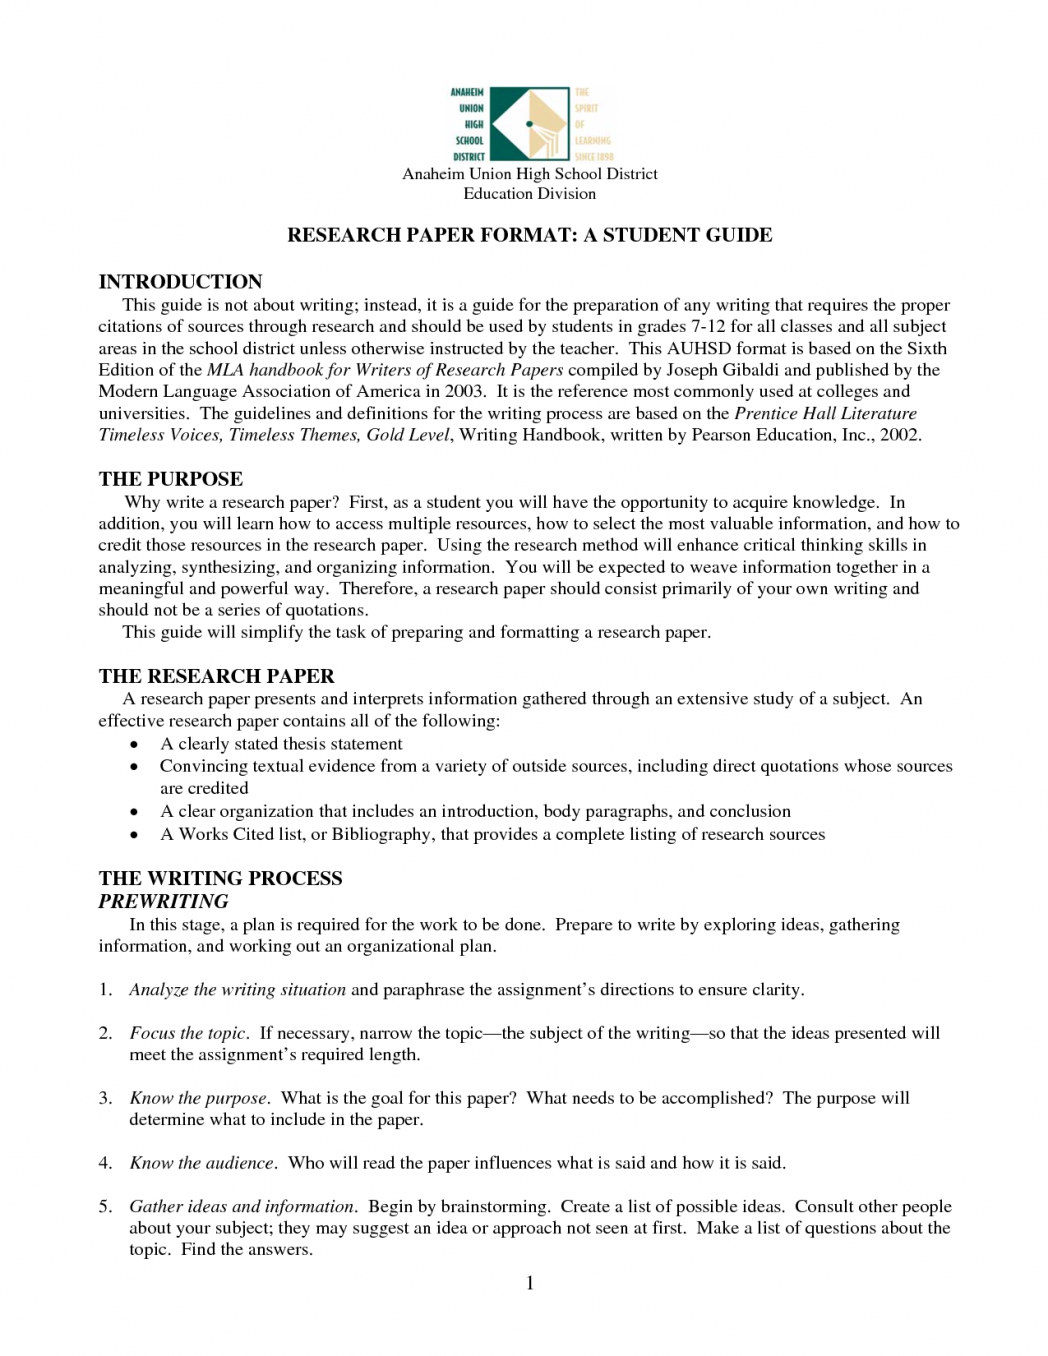 010 Research Paper Example Of On Domestic Violence Essays About Essay Topics Exceptional Outline For Proposal Full